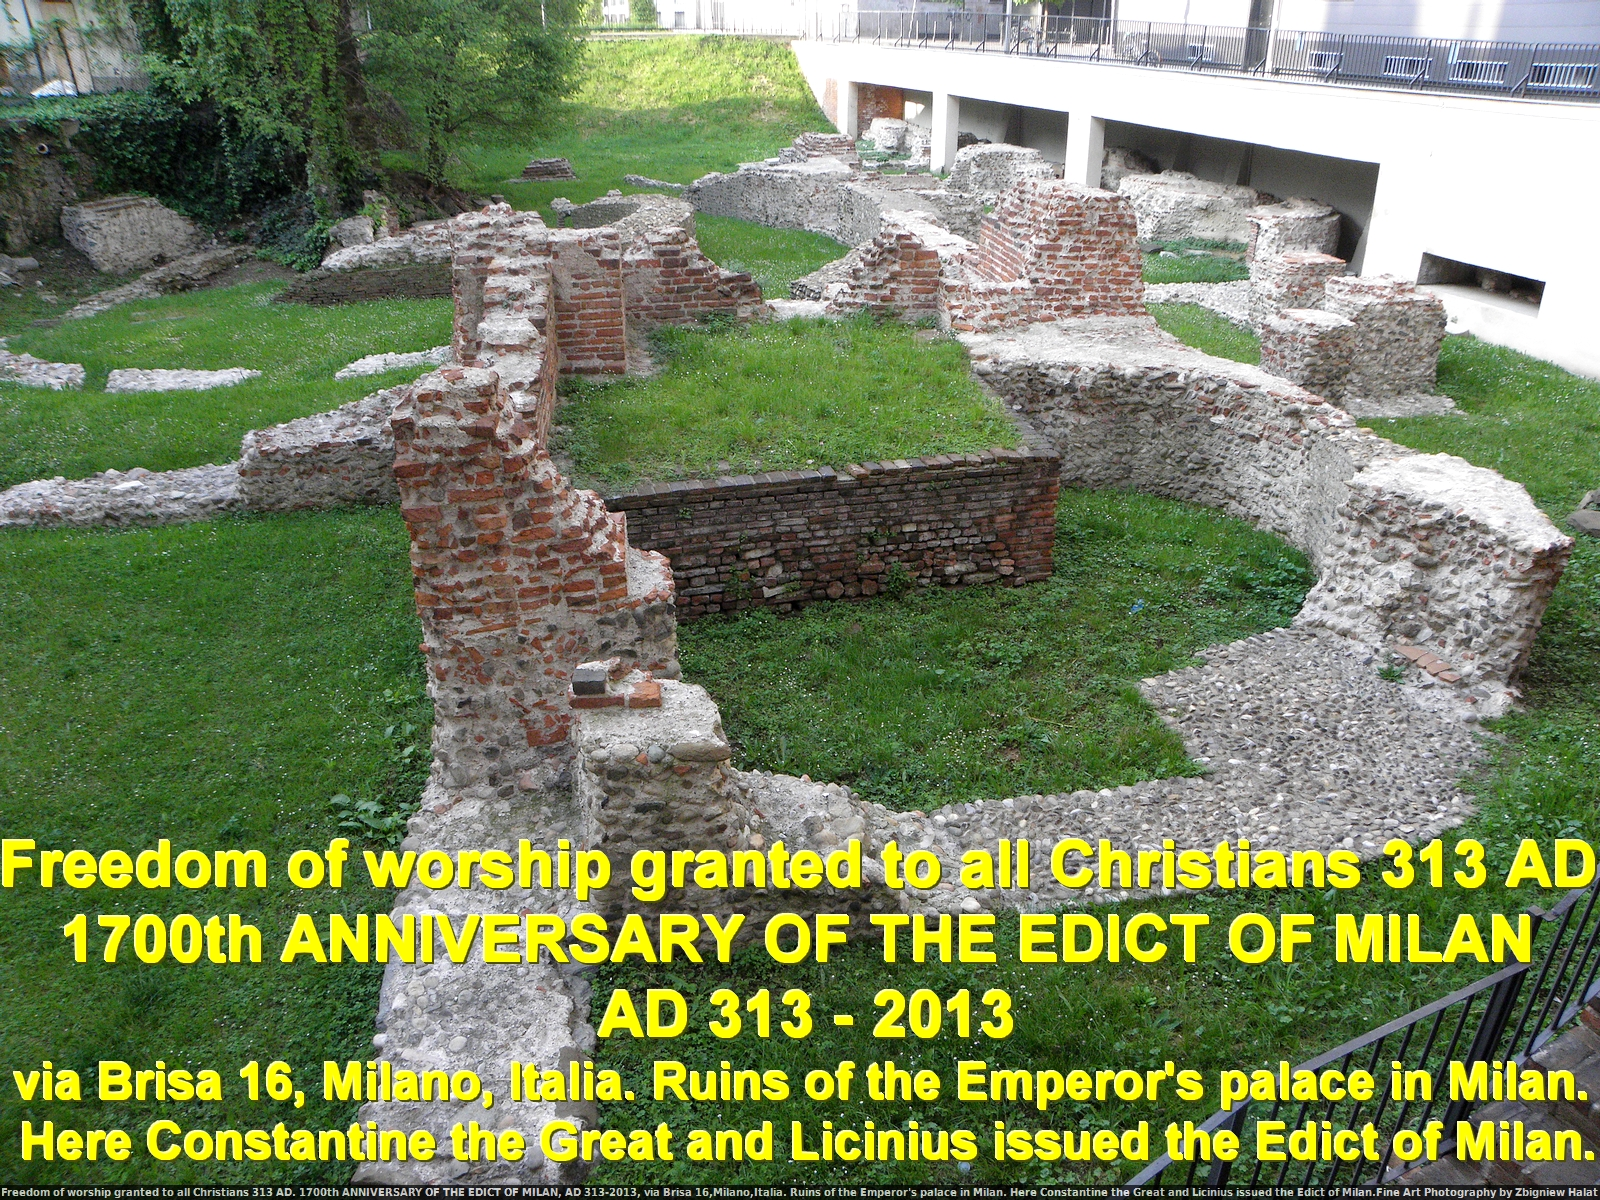 Freedom of worship granted to all Christians 313 AD. 1700th ANNIVERSARY OF THE EDICT OF MILAN, AD 313-2013, via Brisa 16,Milano,Italia. Ruins of the Emperor's palace in Milan. Here Constantine the Great and Licinius issued the Edict of Milan.Fine Art Photography by Zbigniew Halat